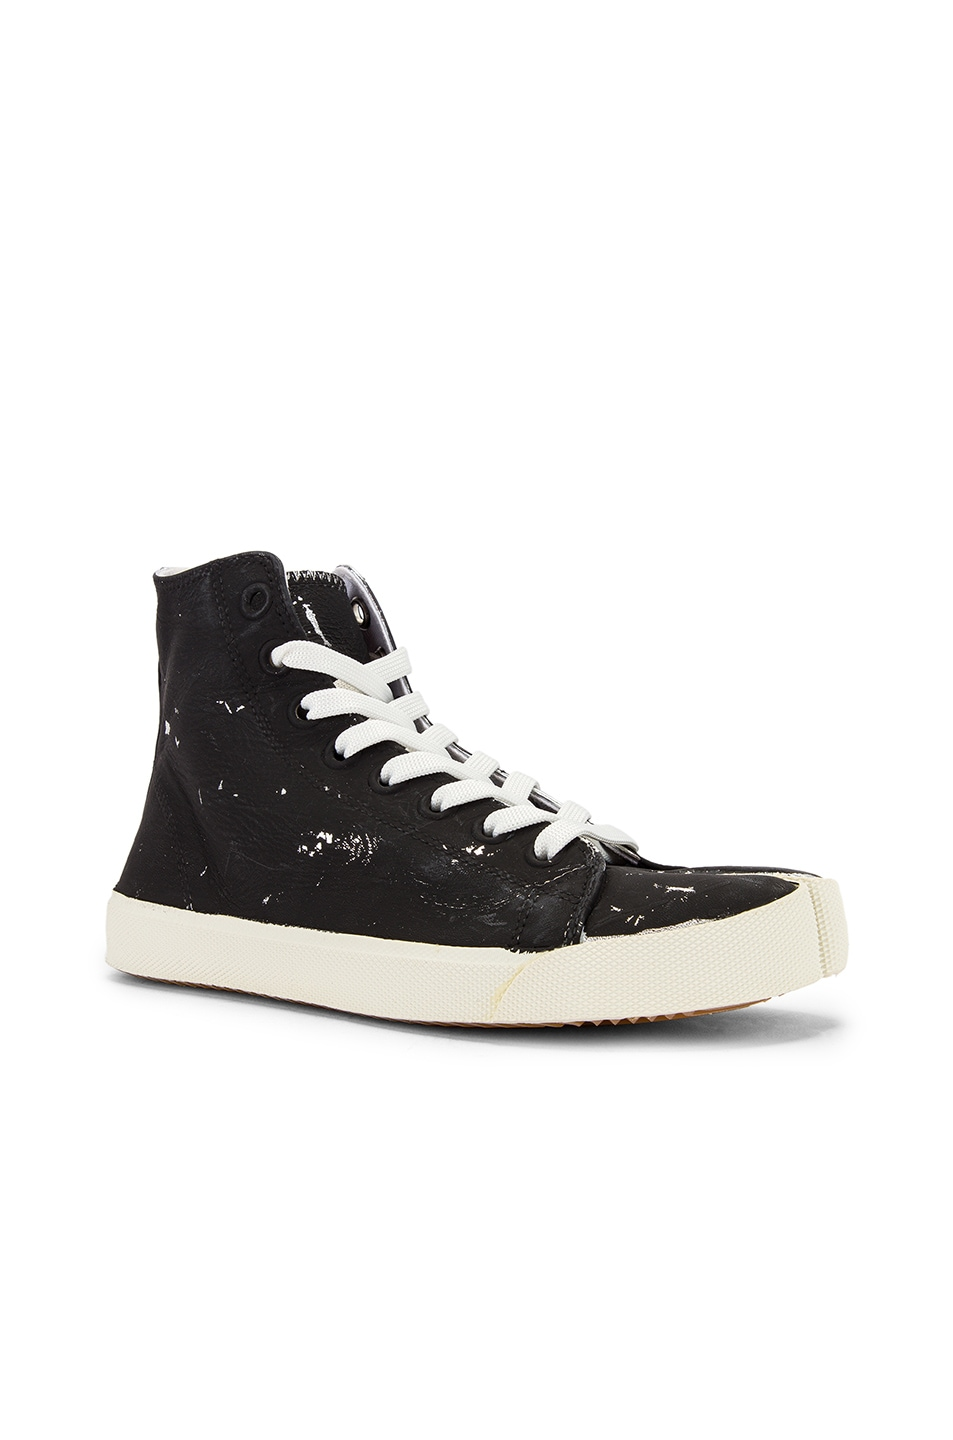 Image 3 of Maison Margiela High Top Tabi Sneakers in Black & Silver